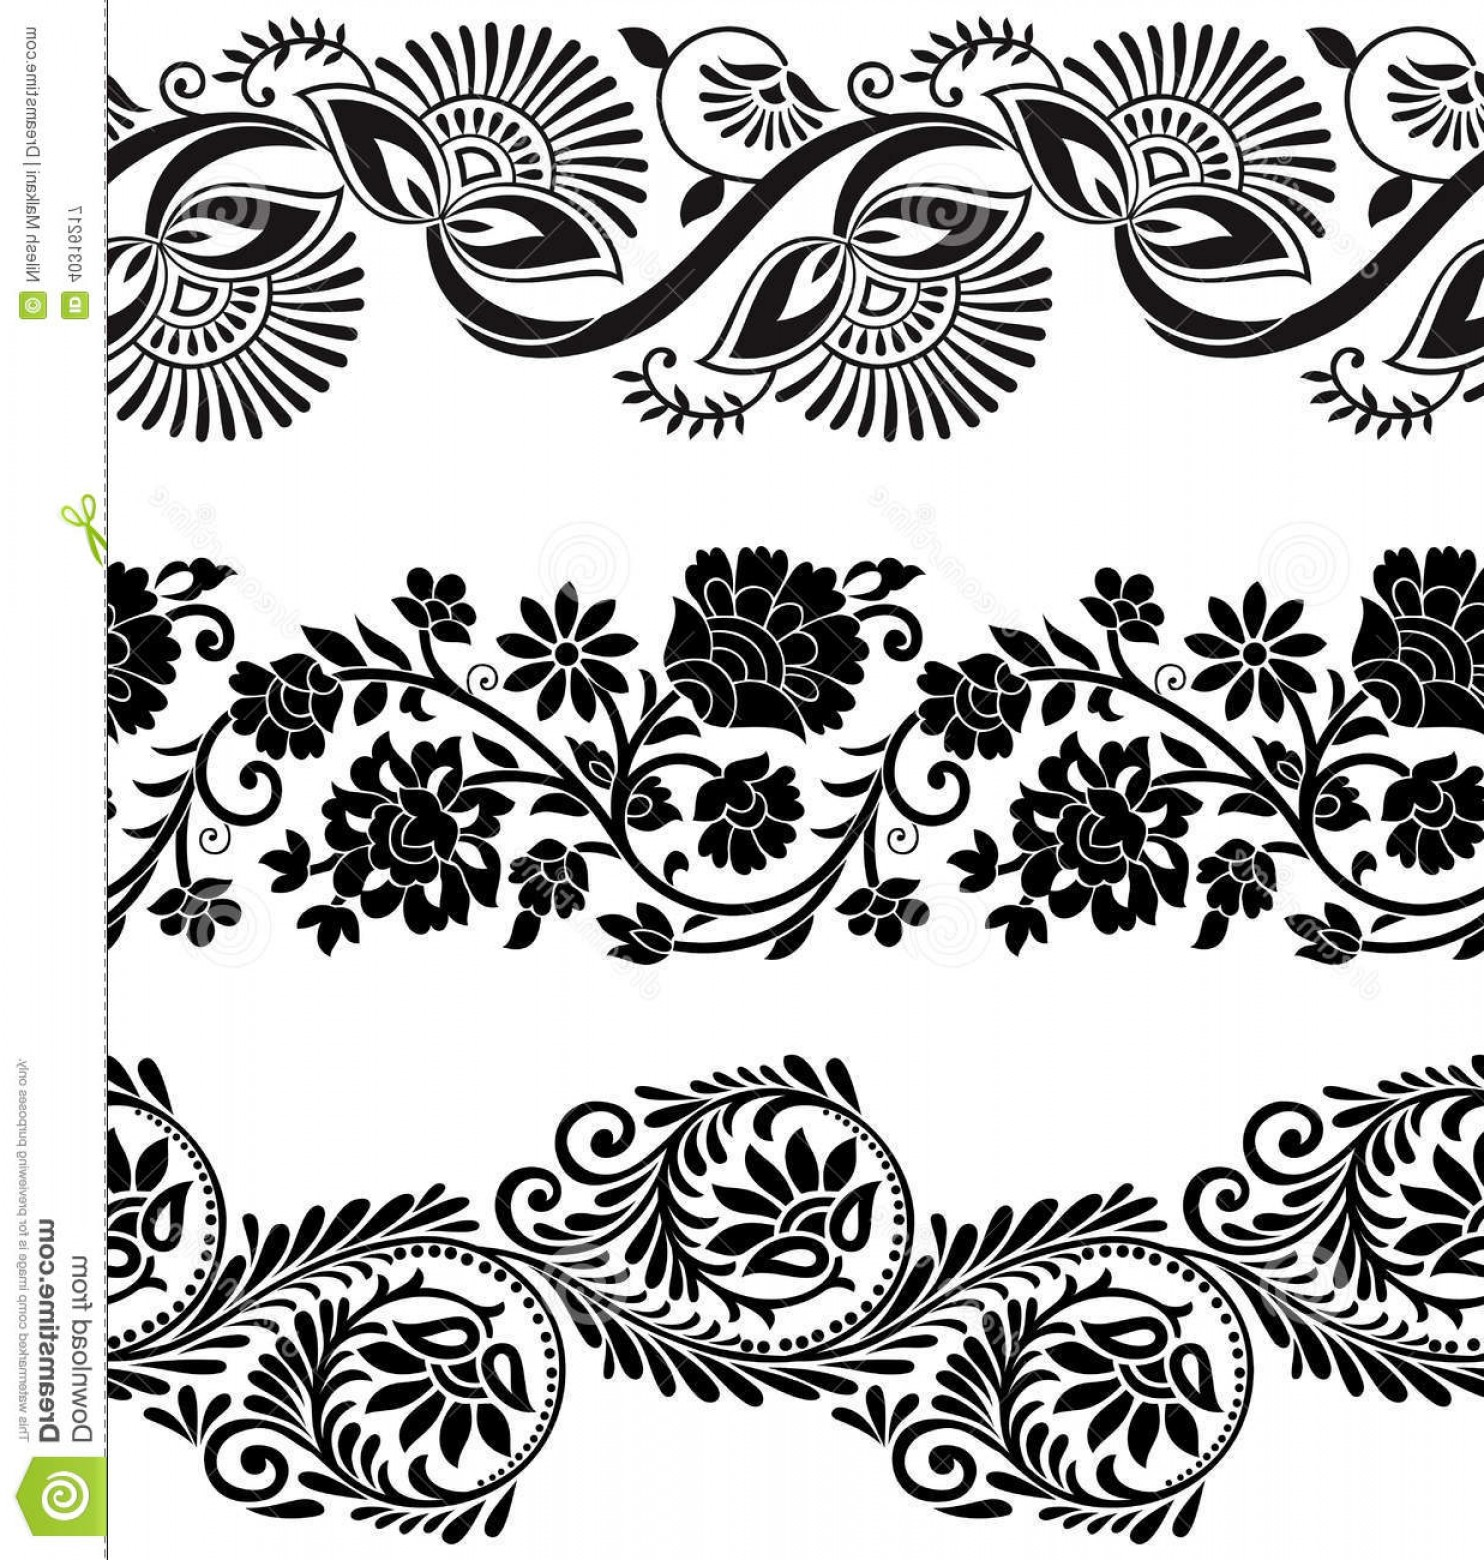 1484x1560 Royalty Free Stock Photography Floral Vector Borders Seamless